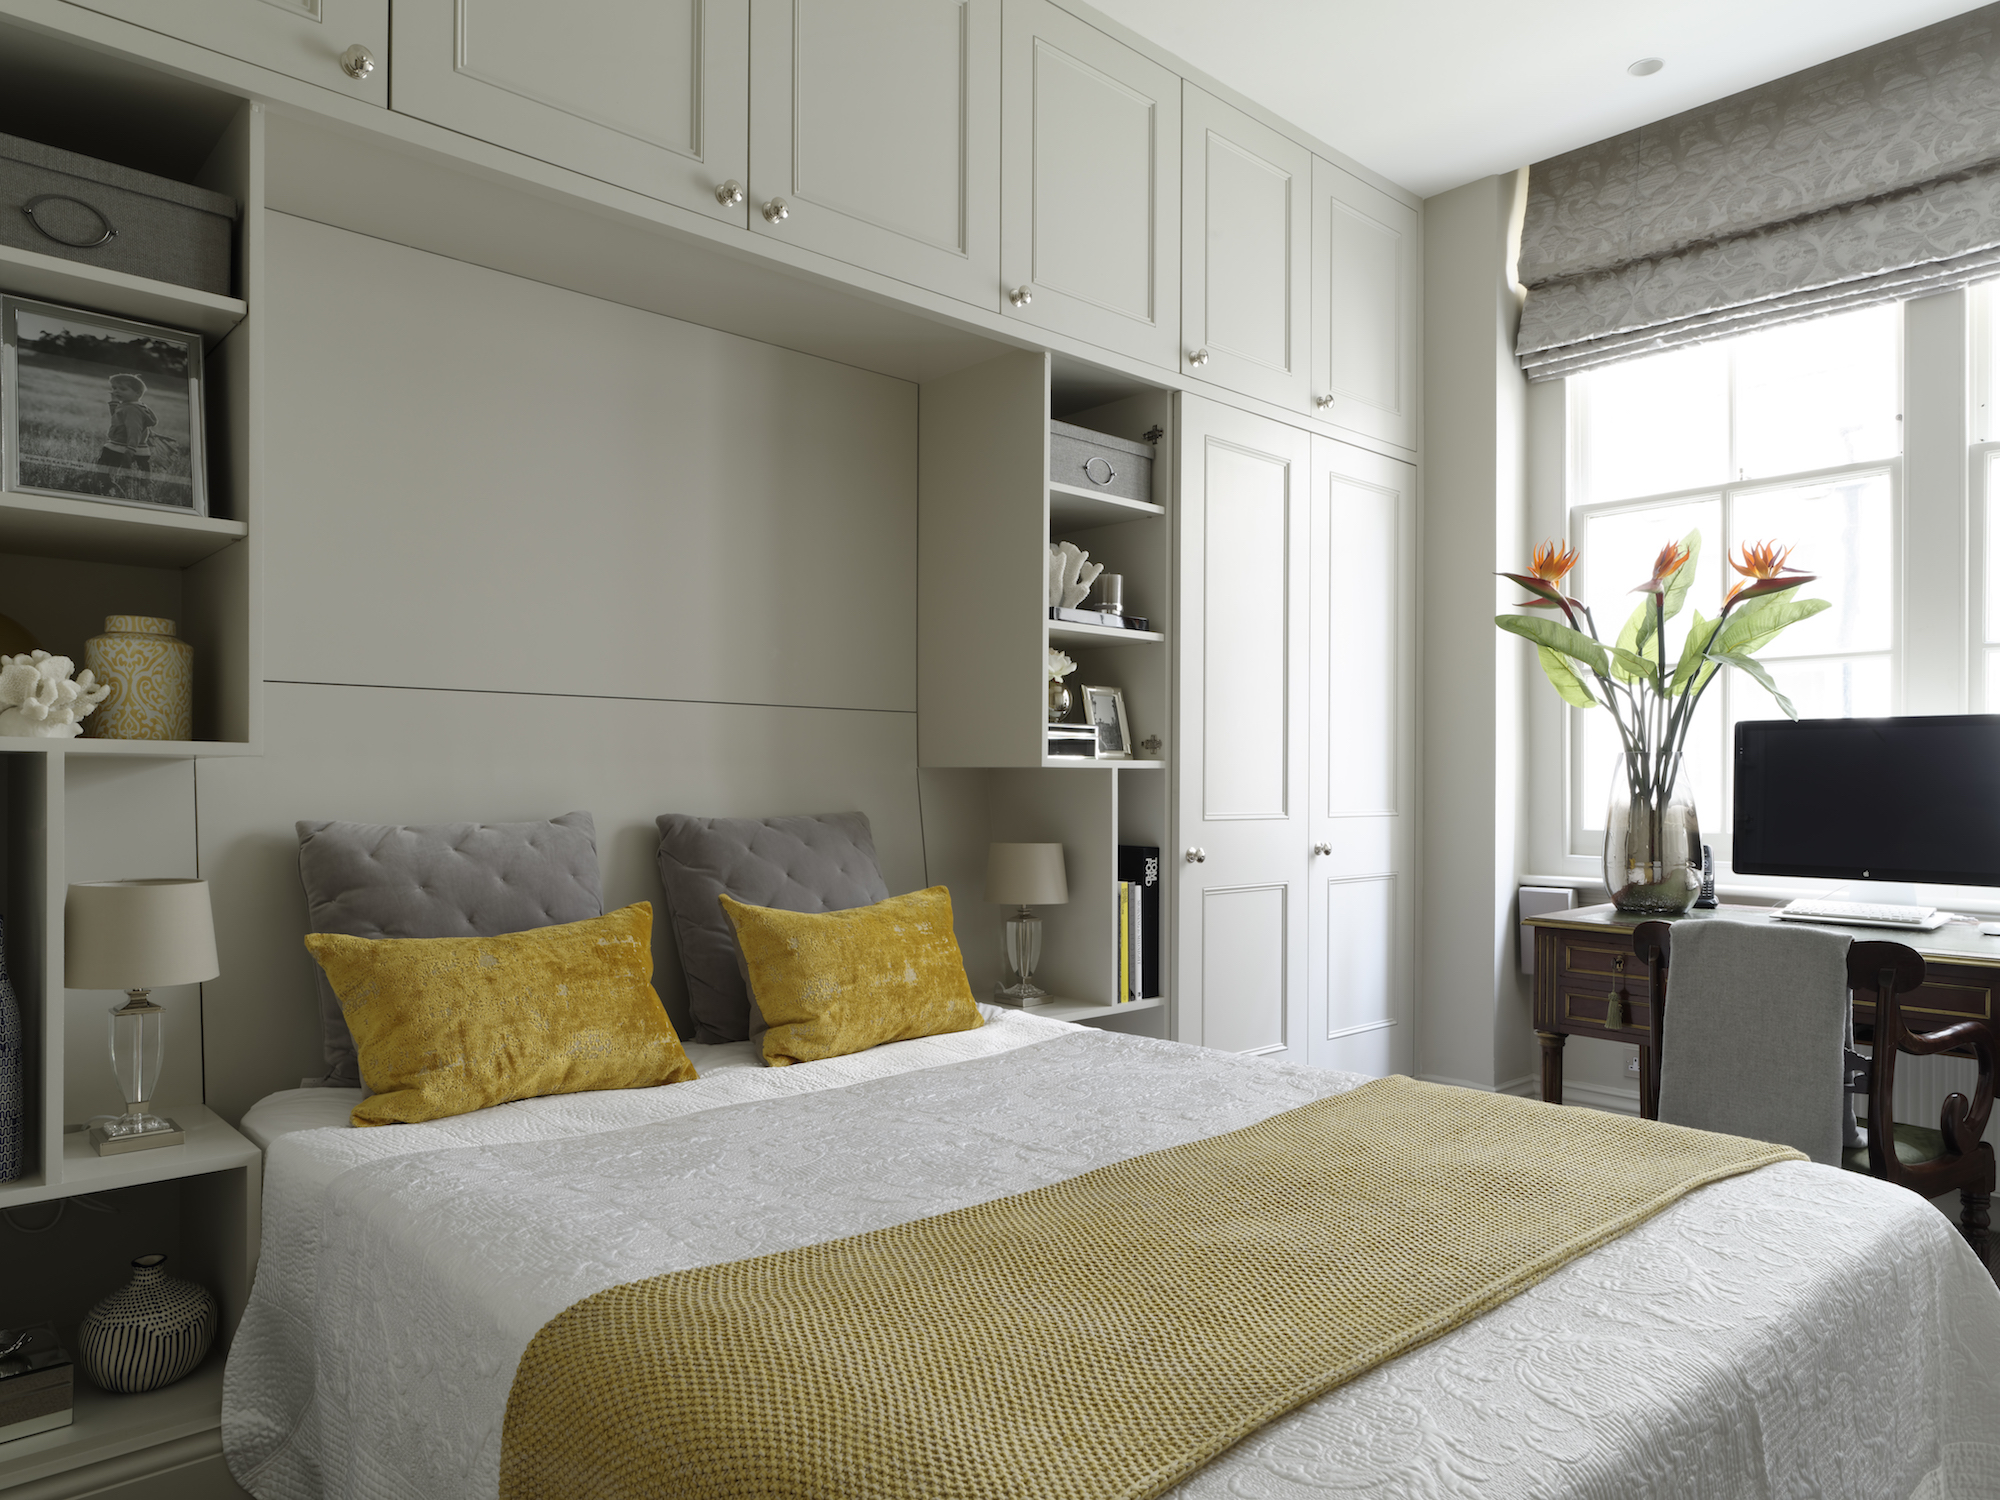 Fulham Apartment<br><h3>LONDON</h3>